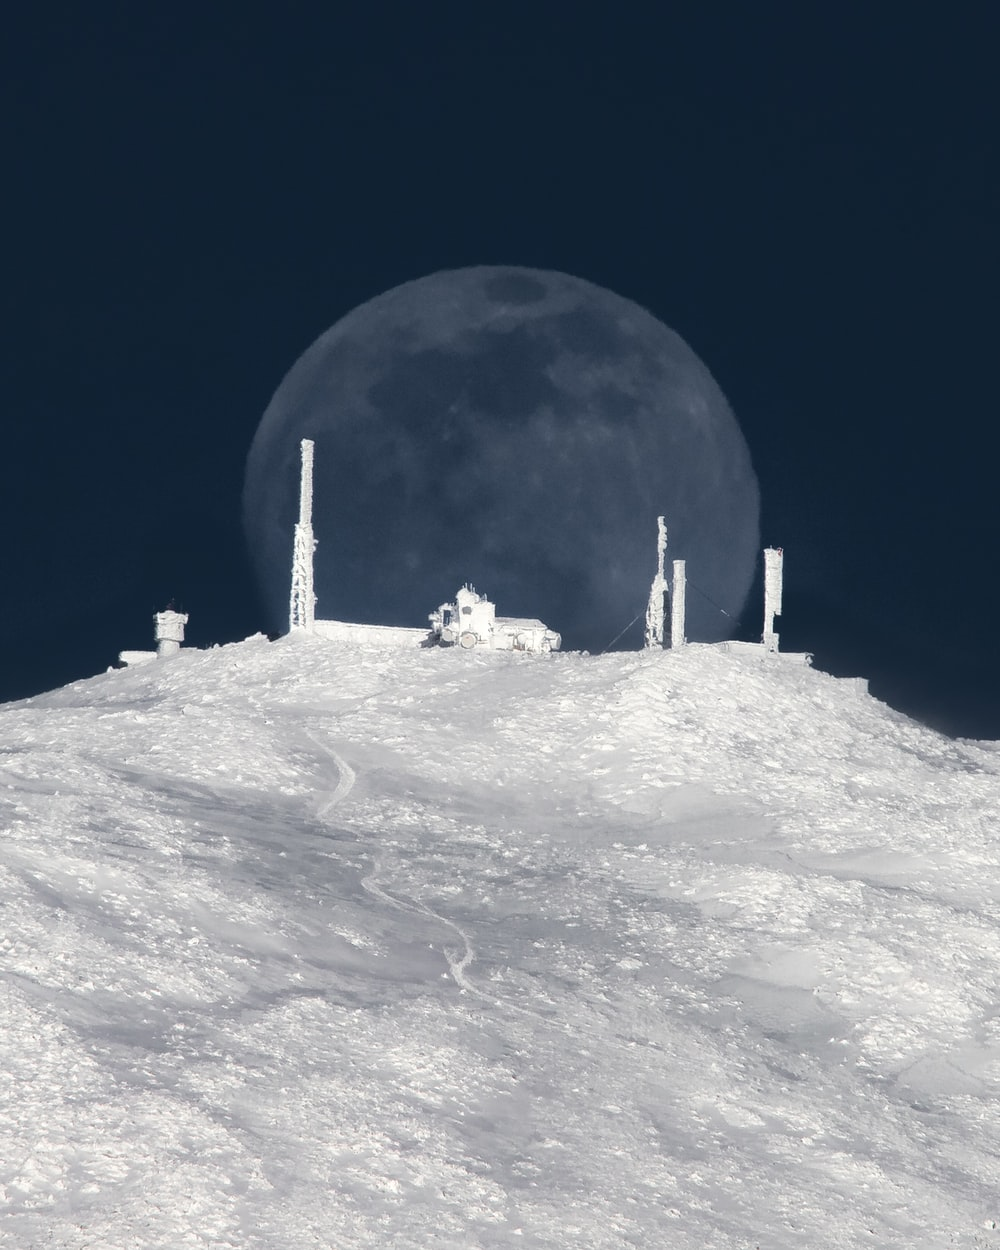 white and gray building on white snow covered mountain during night time